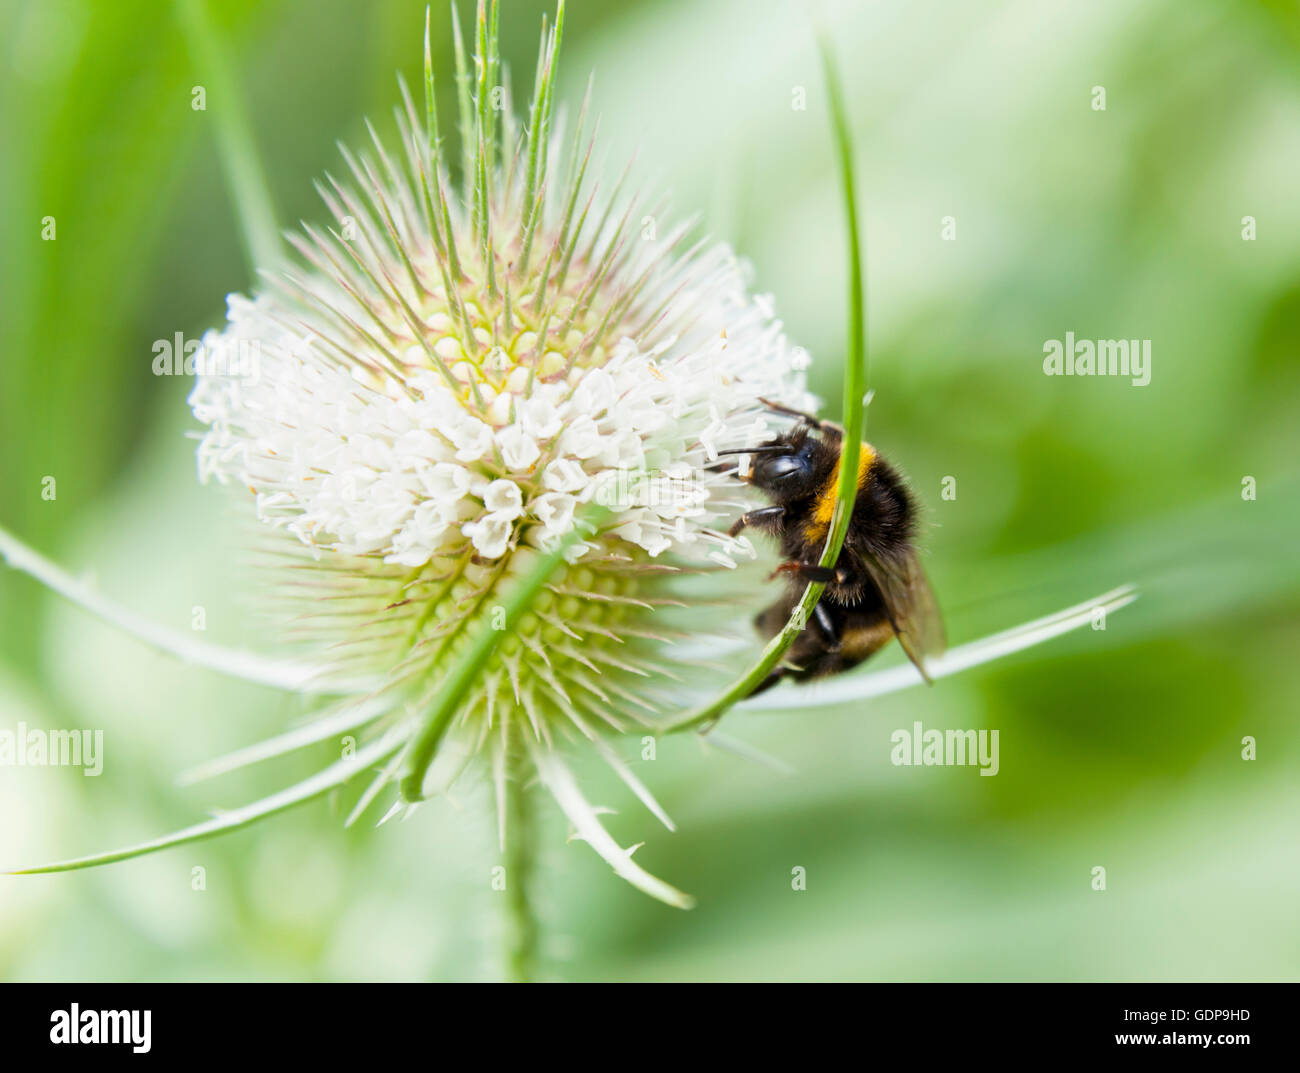 Close up of bumblebee feeding on wildflower nectar - Stock Image